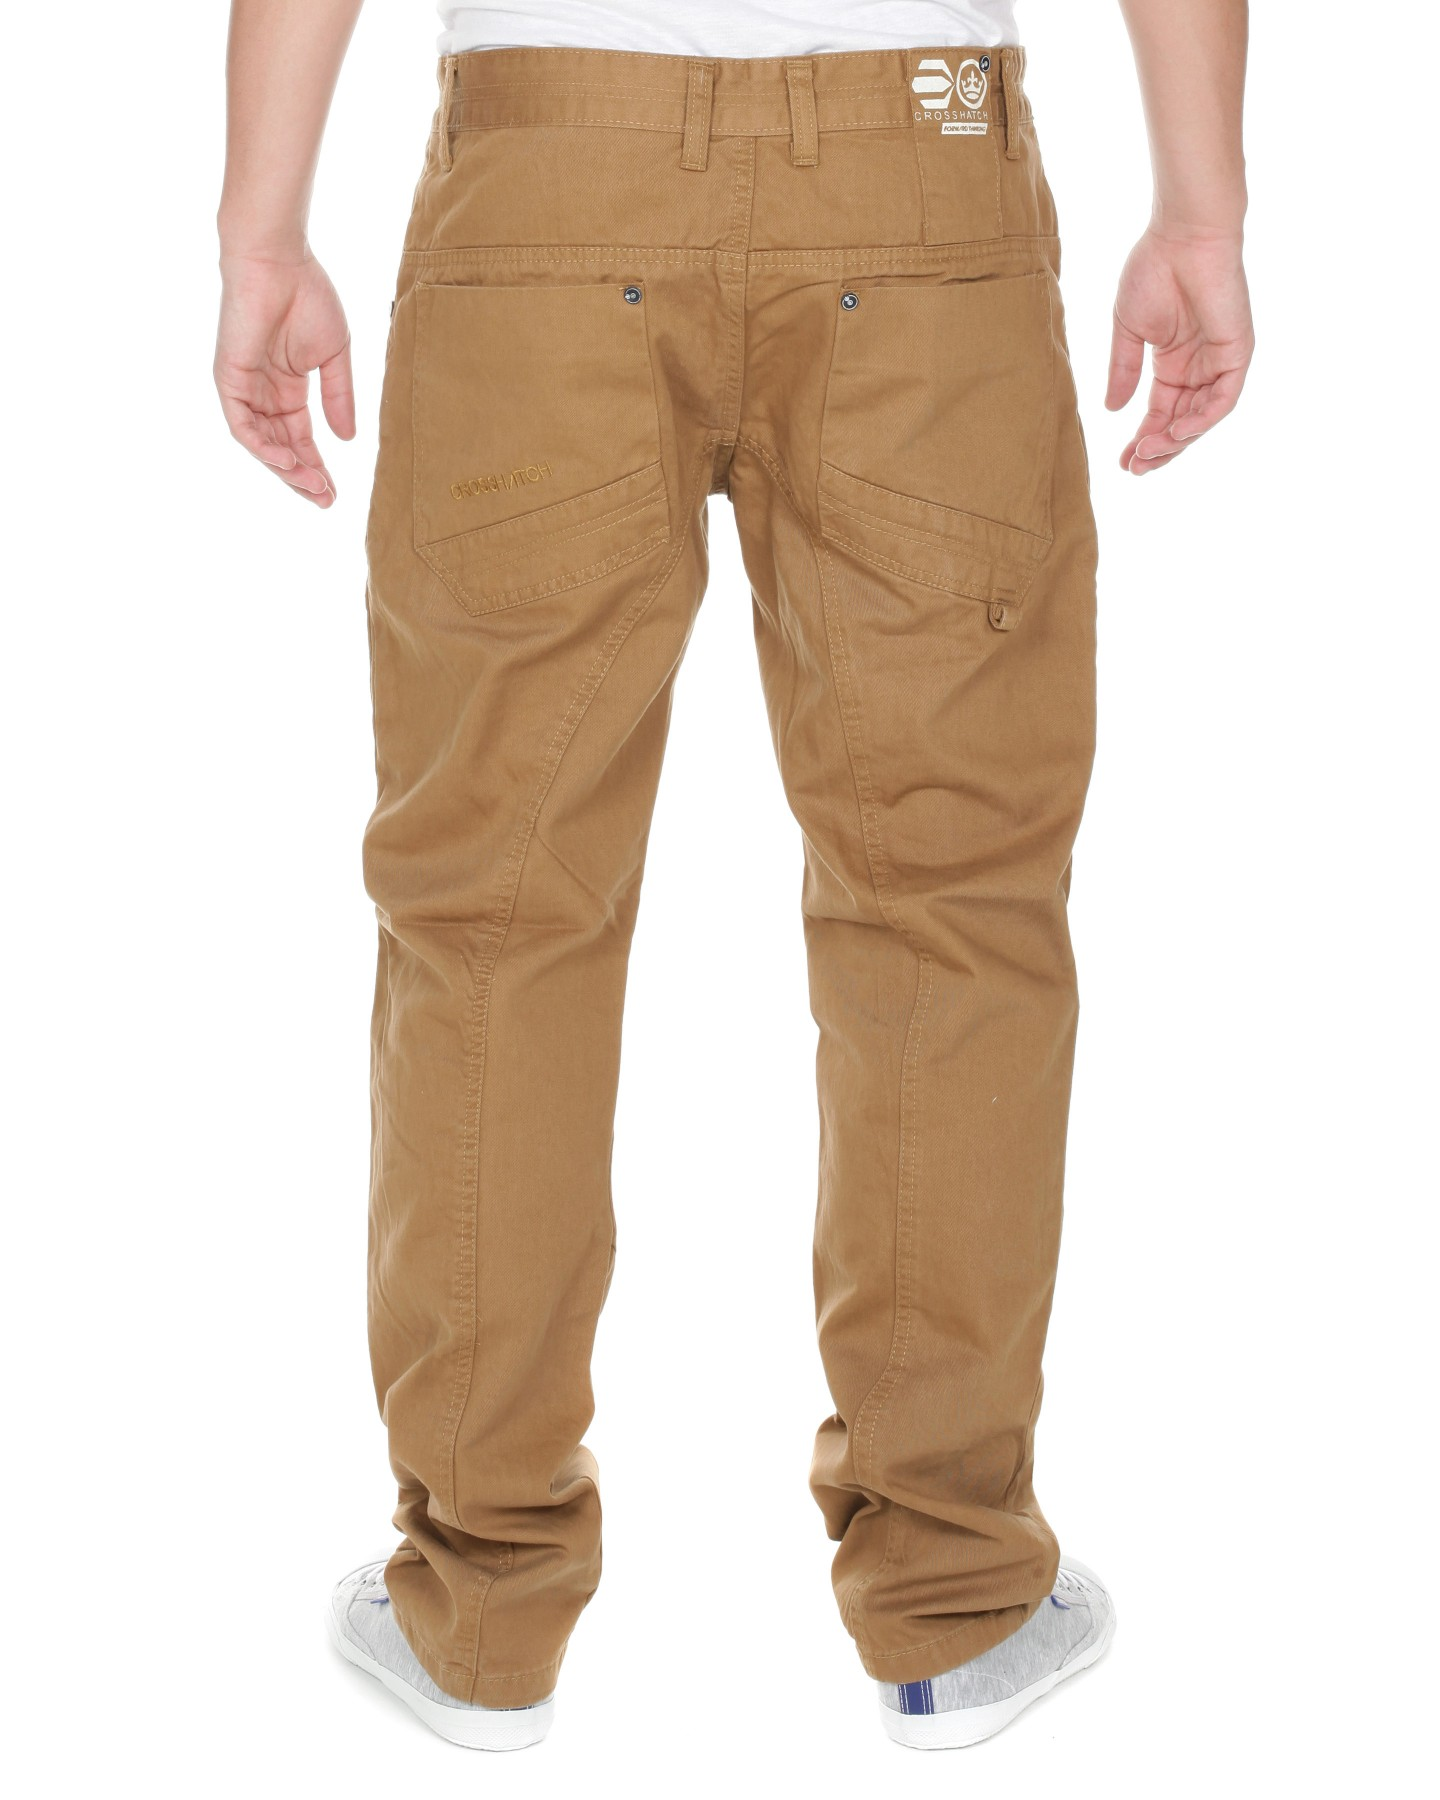 These jeans offer the classic fit and look you expect from wrangler in White, Black or Tan. These % cotton jeans are heavyweight denim, so you know they are ready to work. Original fit Wrangler jeans are also available in rigid and prewashed blue denim, as well as the Gold Buckle finishes of bleached, stonewash, and dark stonewash.